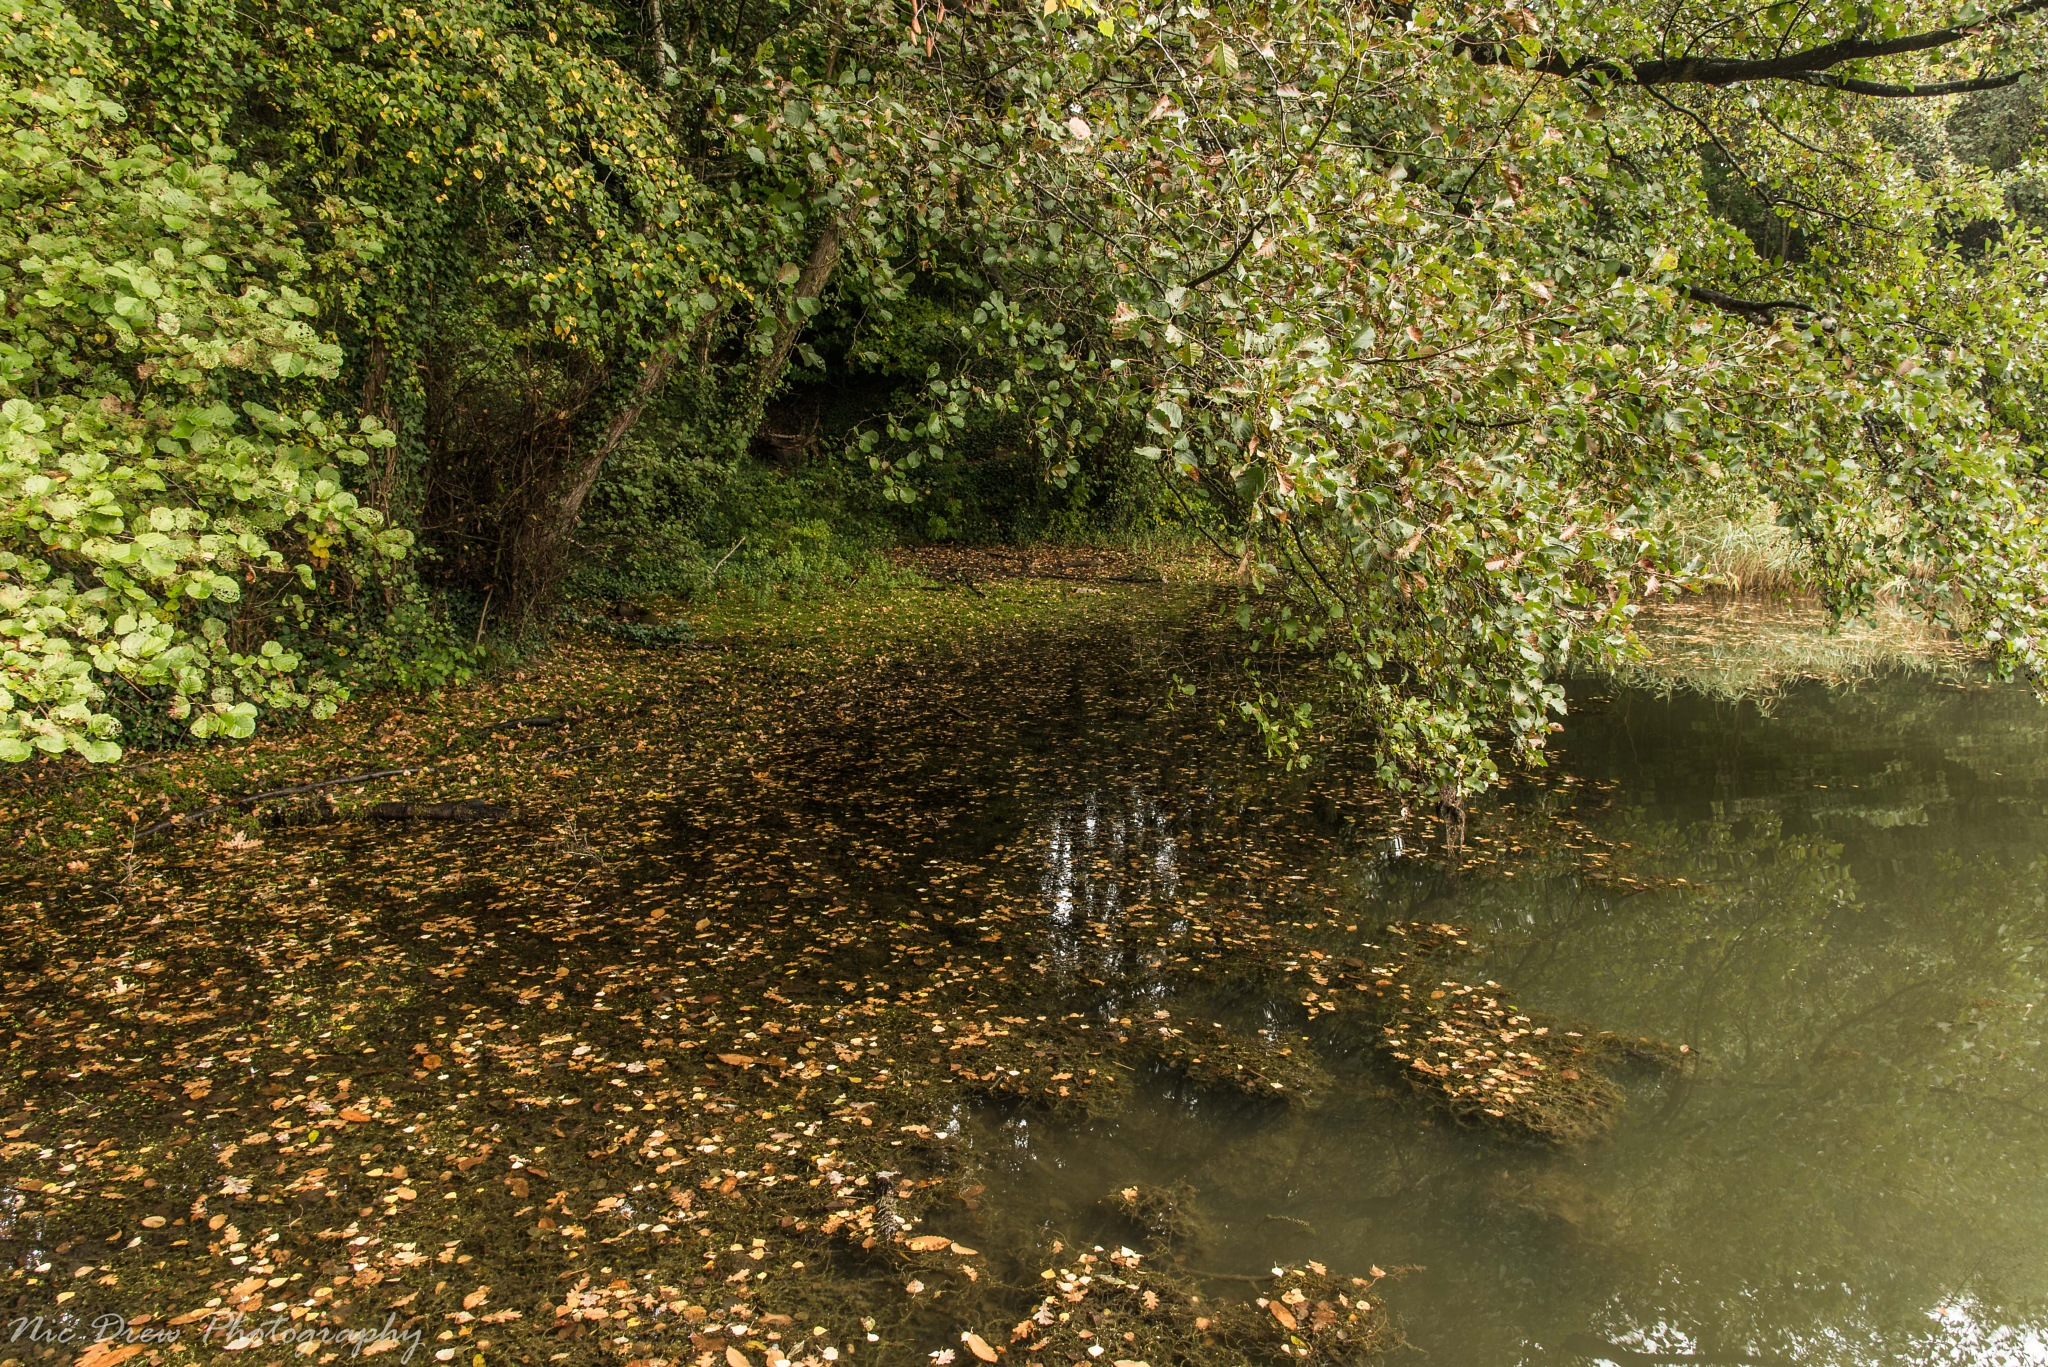 Leaves in a pond by Nic Drew